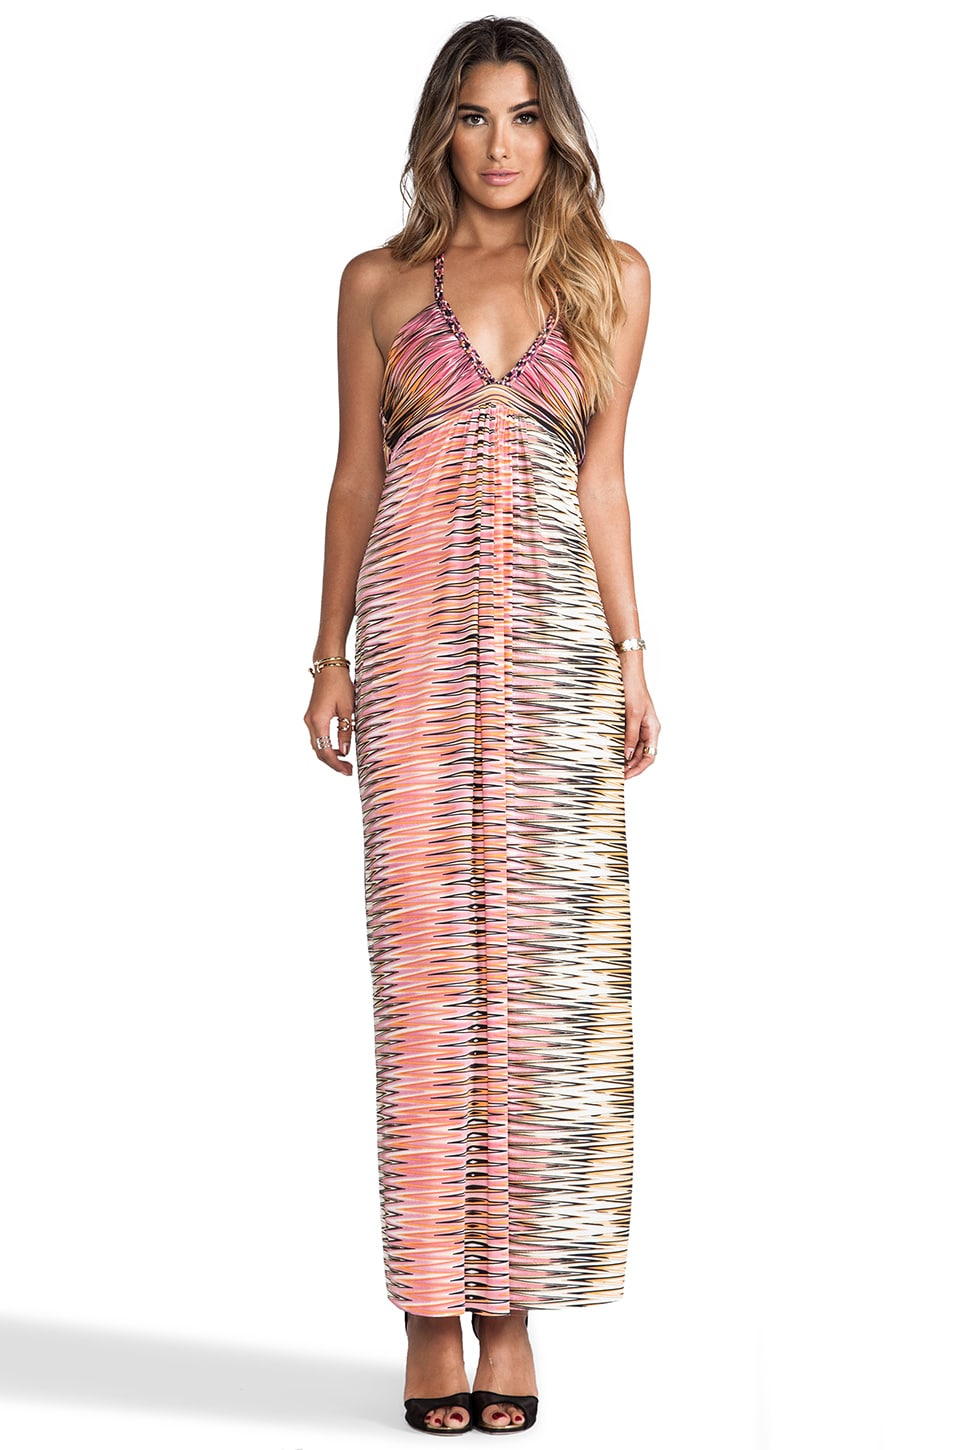 T-Bags LosAngeles Criss Cross Back Maxi Dress with Tonal Hem in Coral Zig Zag